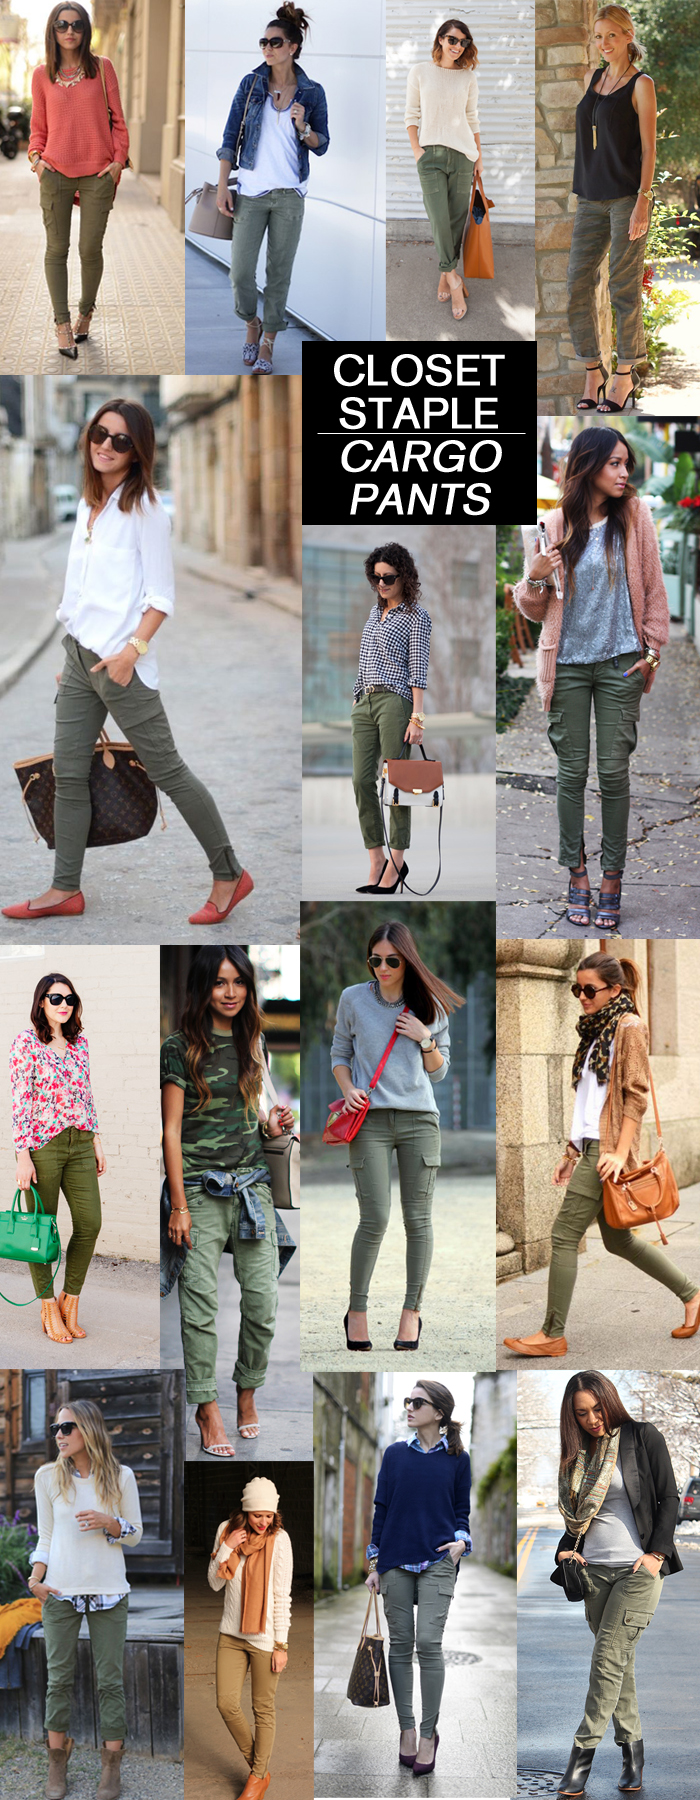 stylish ways to wear army green cargo pants - How to Wear Cargo Pants for Women by popular Florida style blogger The Modern Savvy